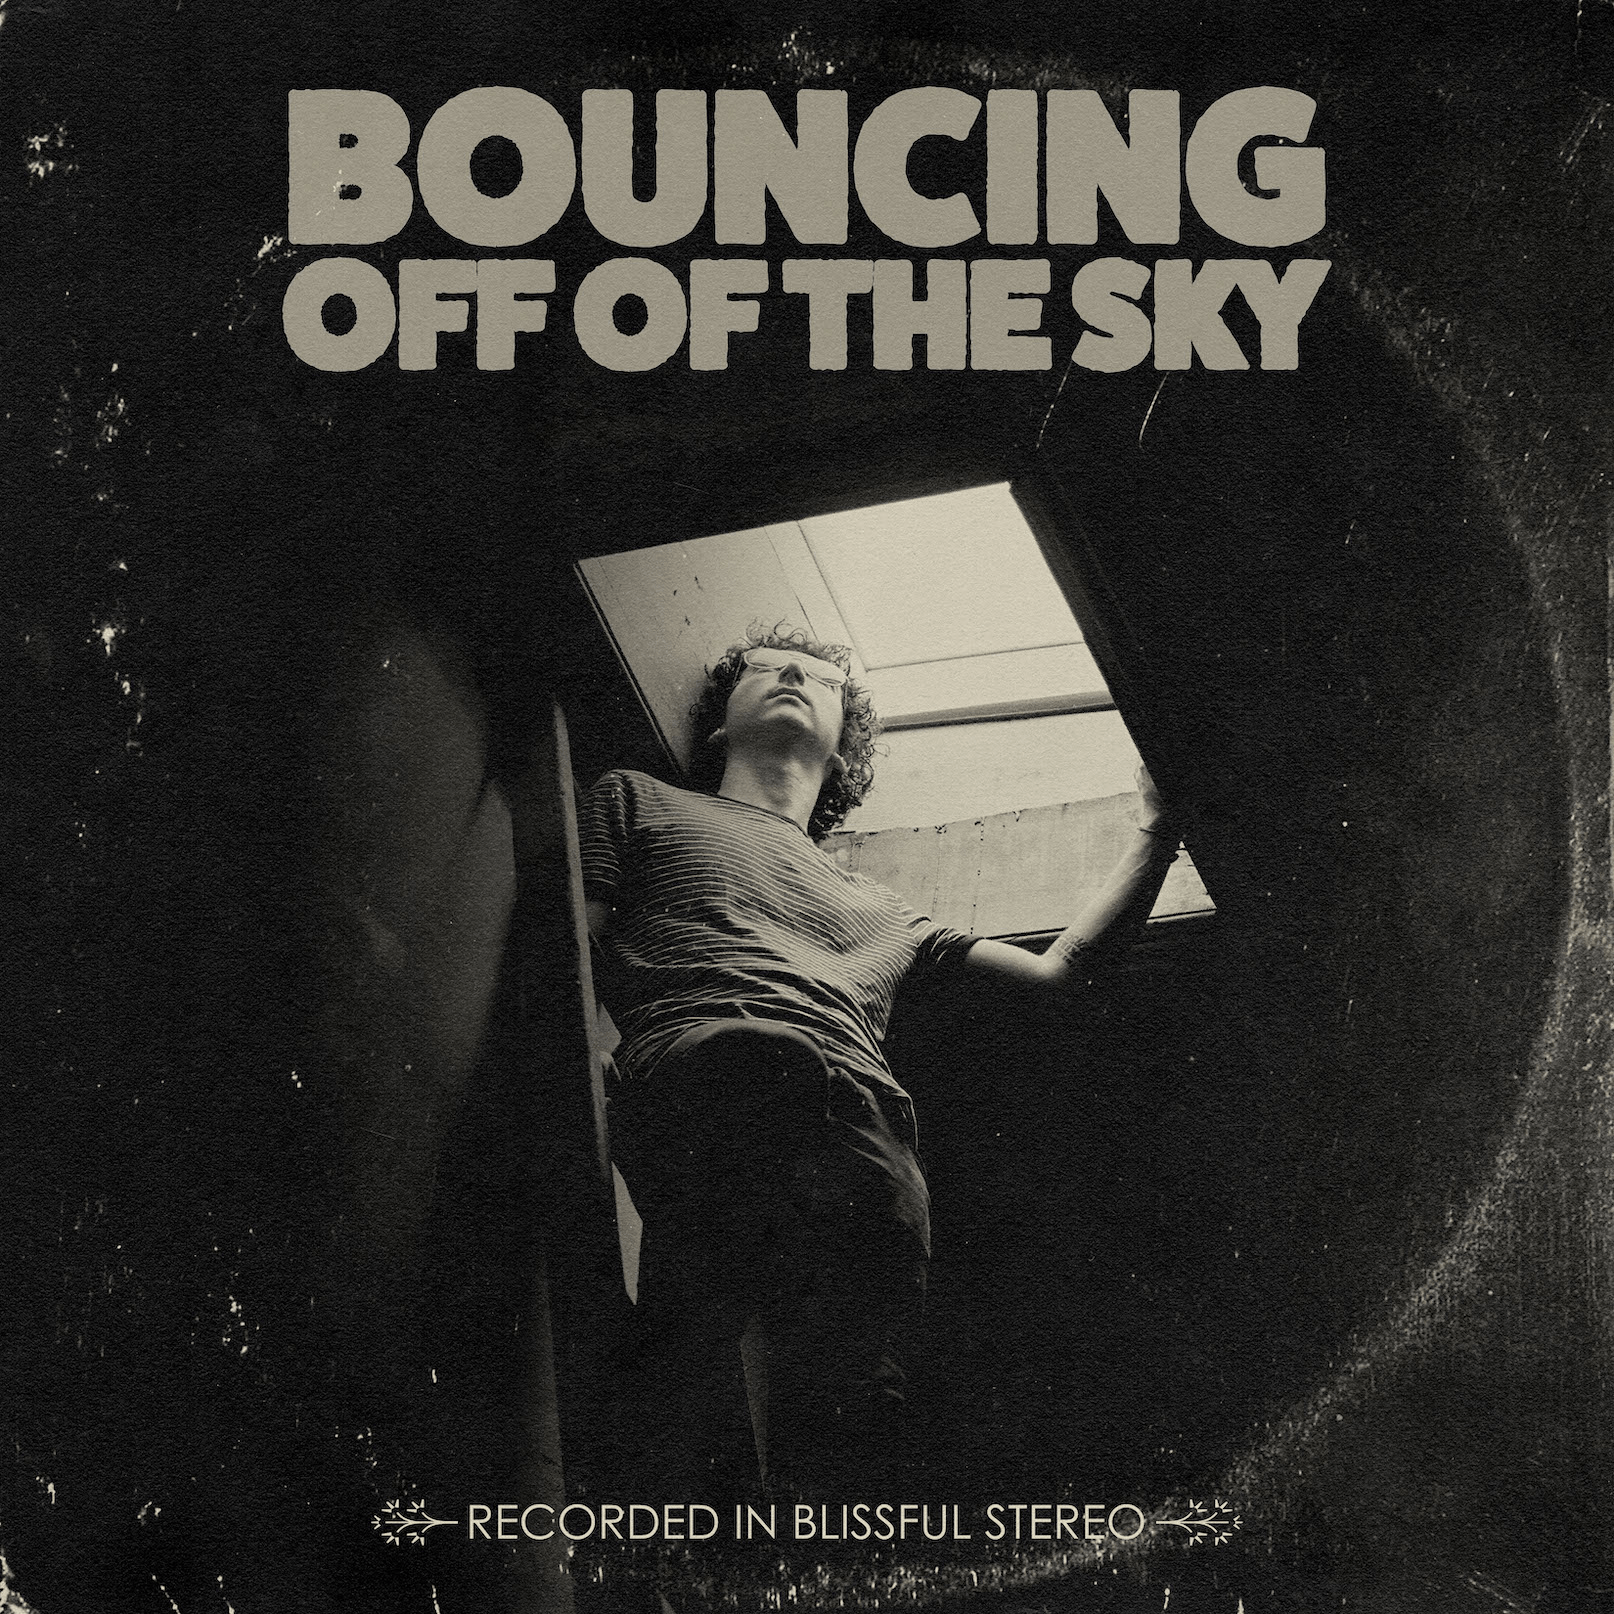 Bouncing off of the Sky—Barney Cortez